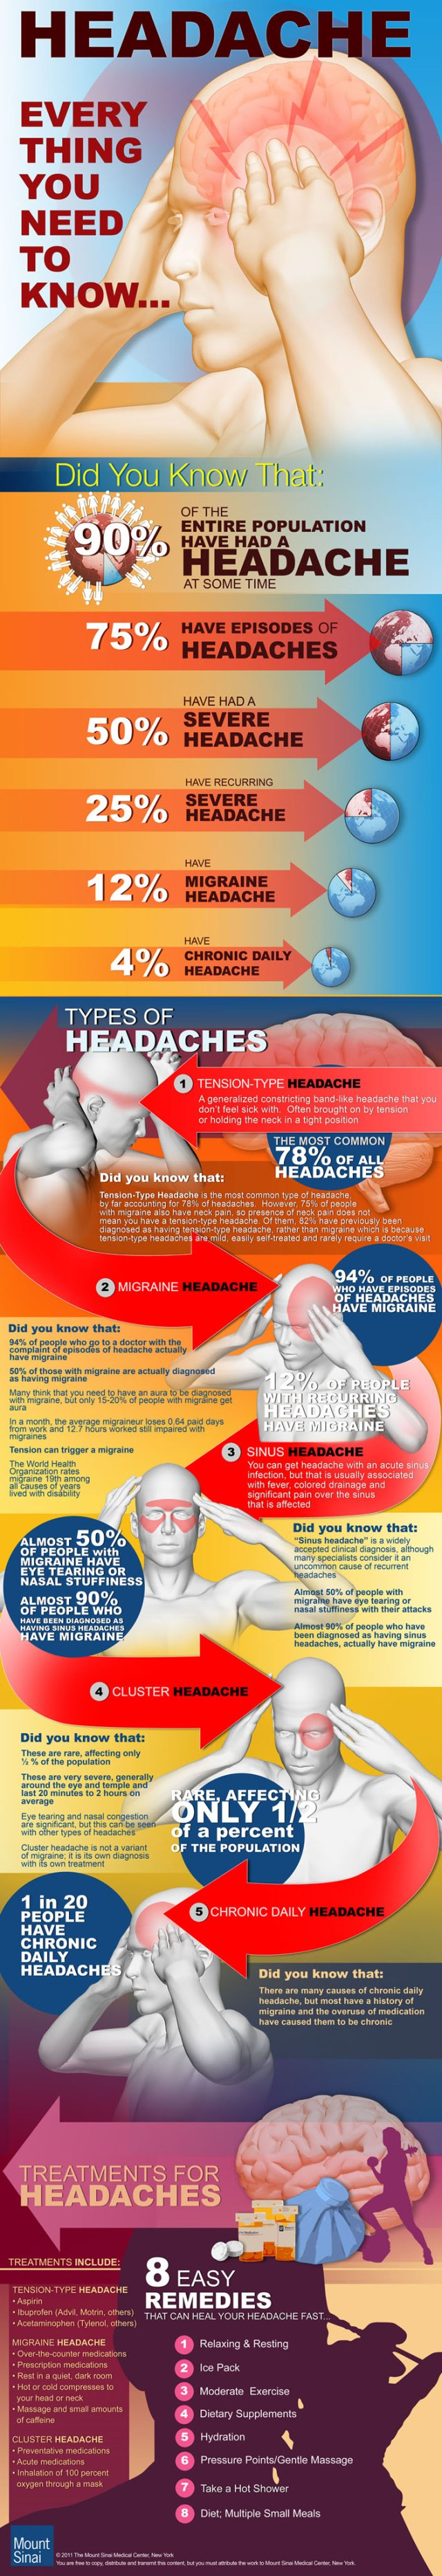 Headache: Everything you Need to Know